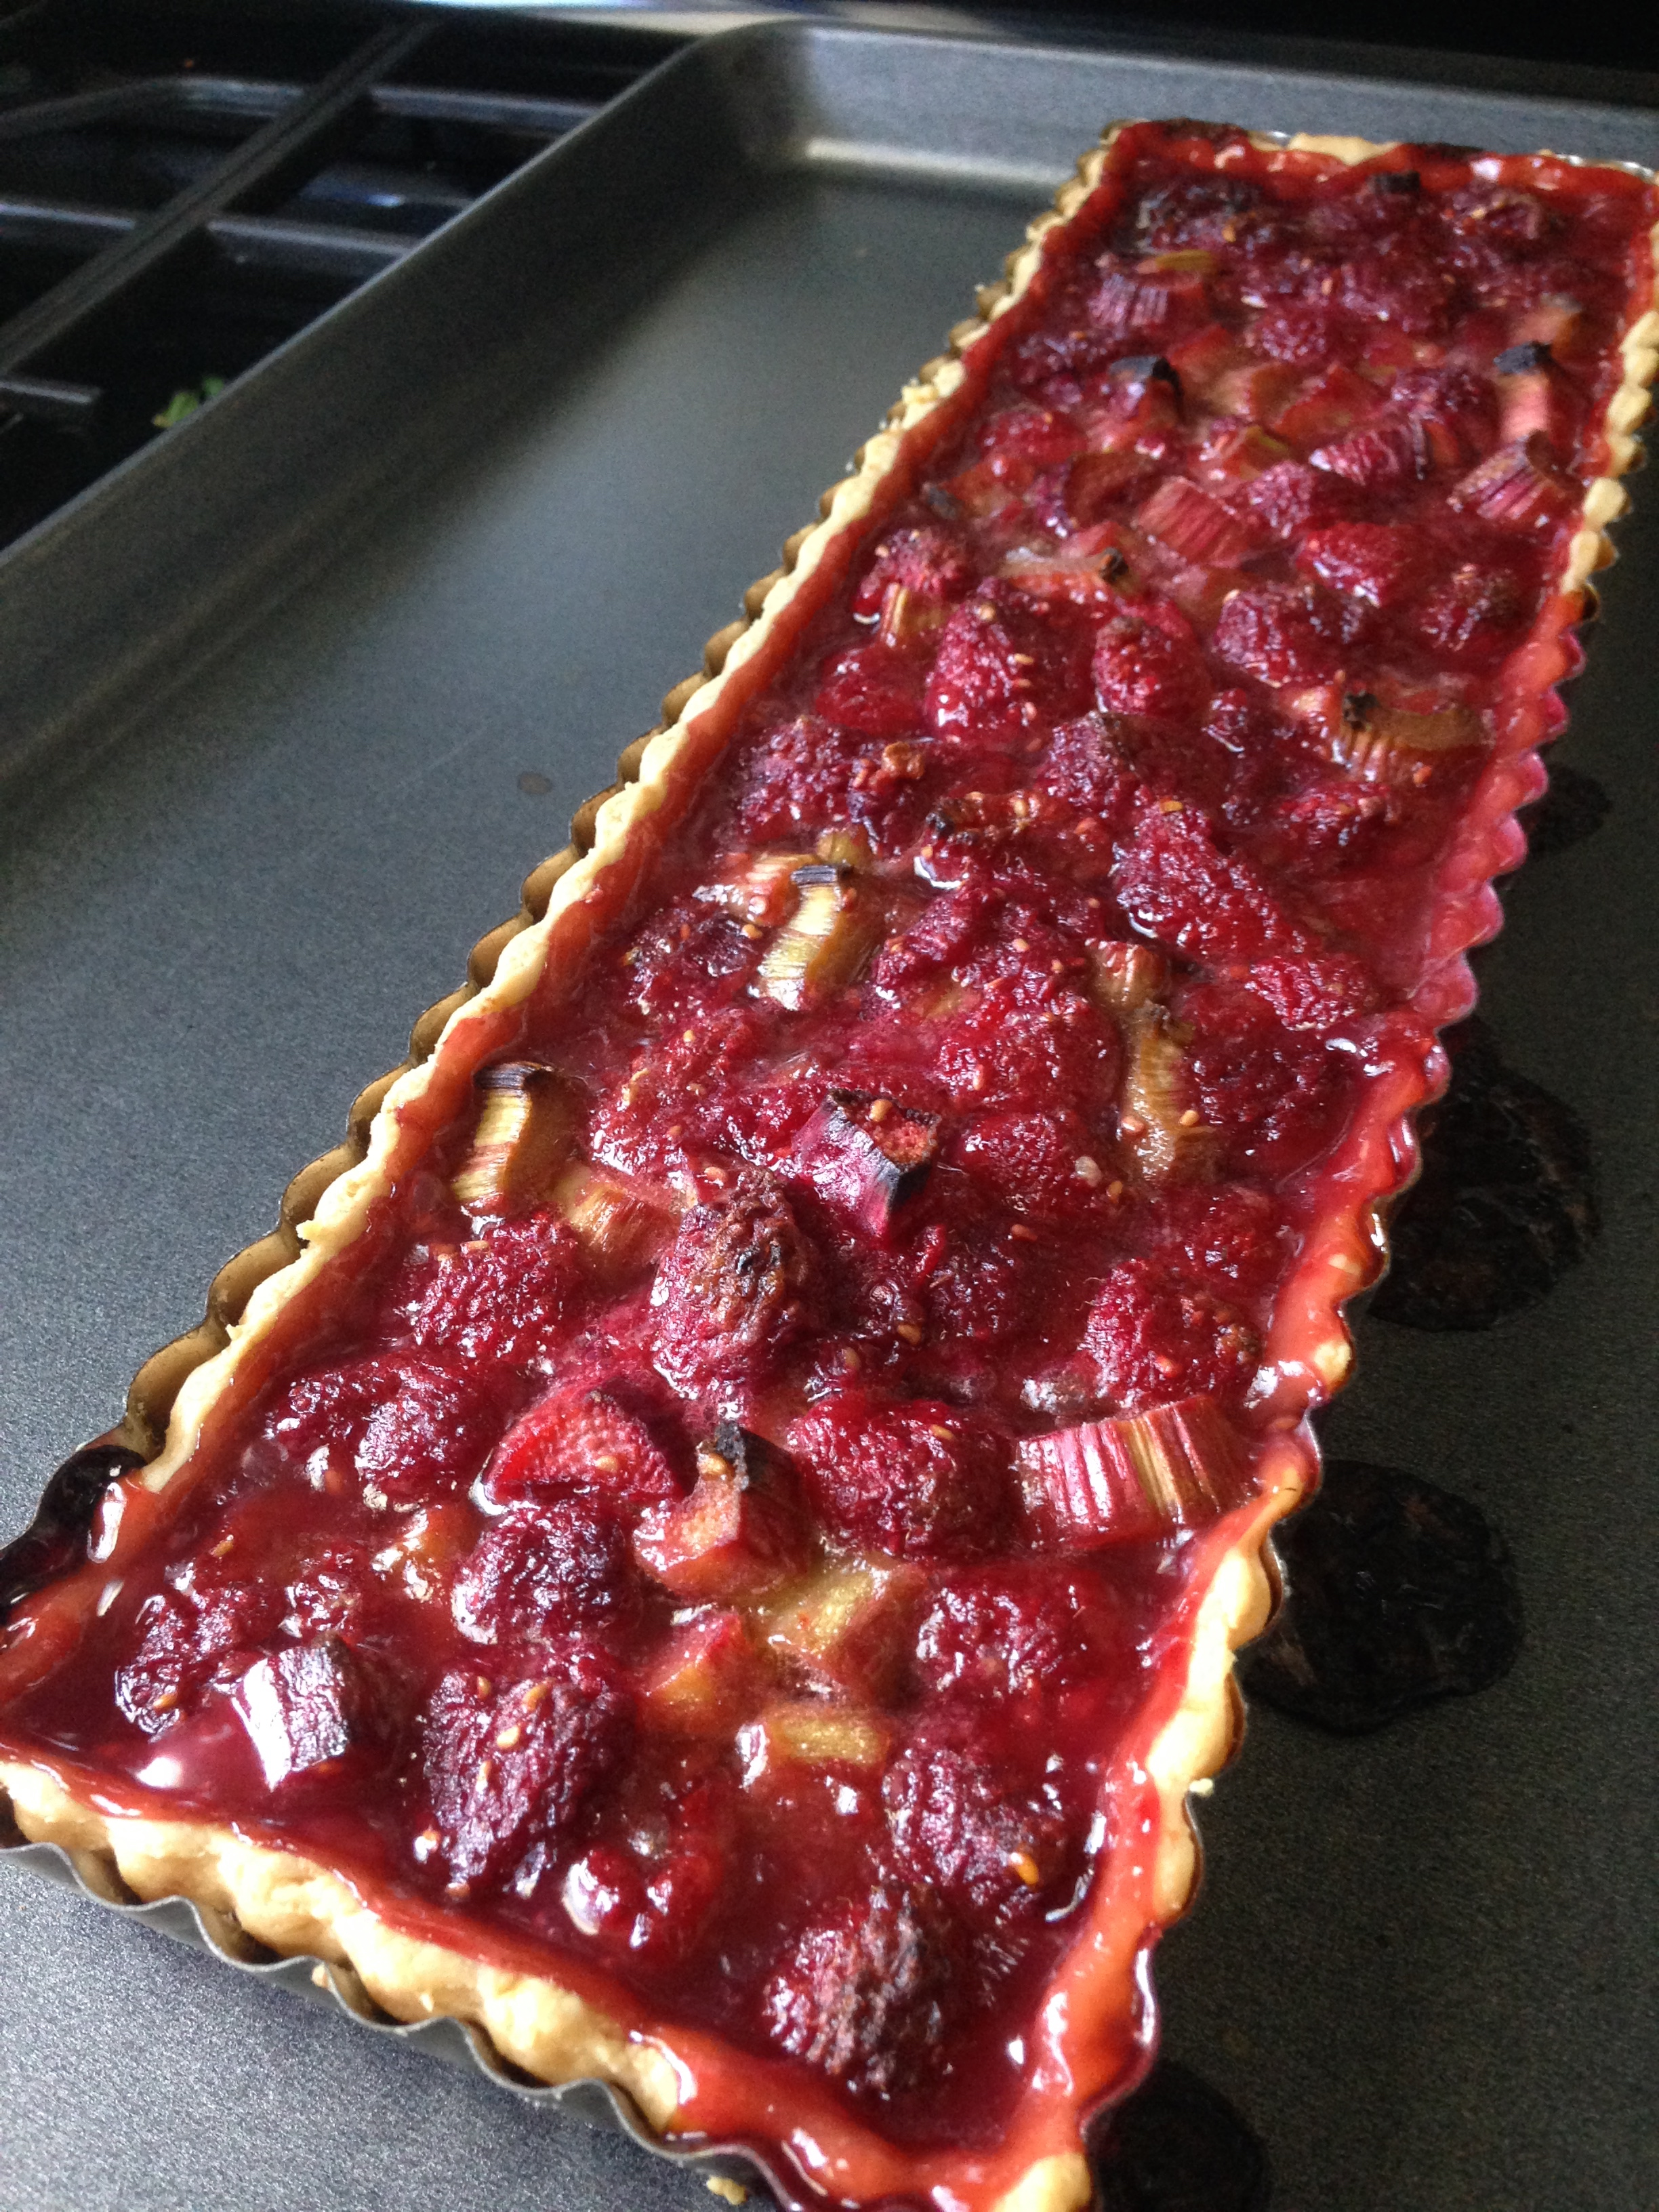 Raspberry and Rhubarb French Tart Fresh out of the oven.